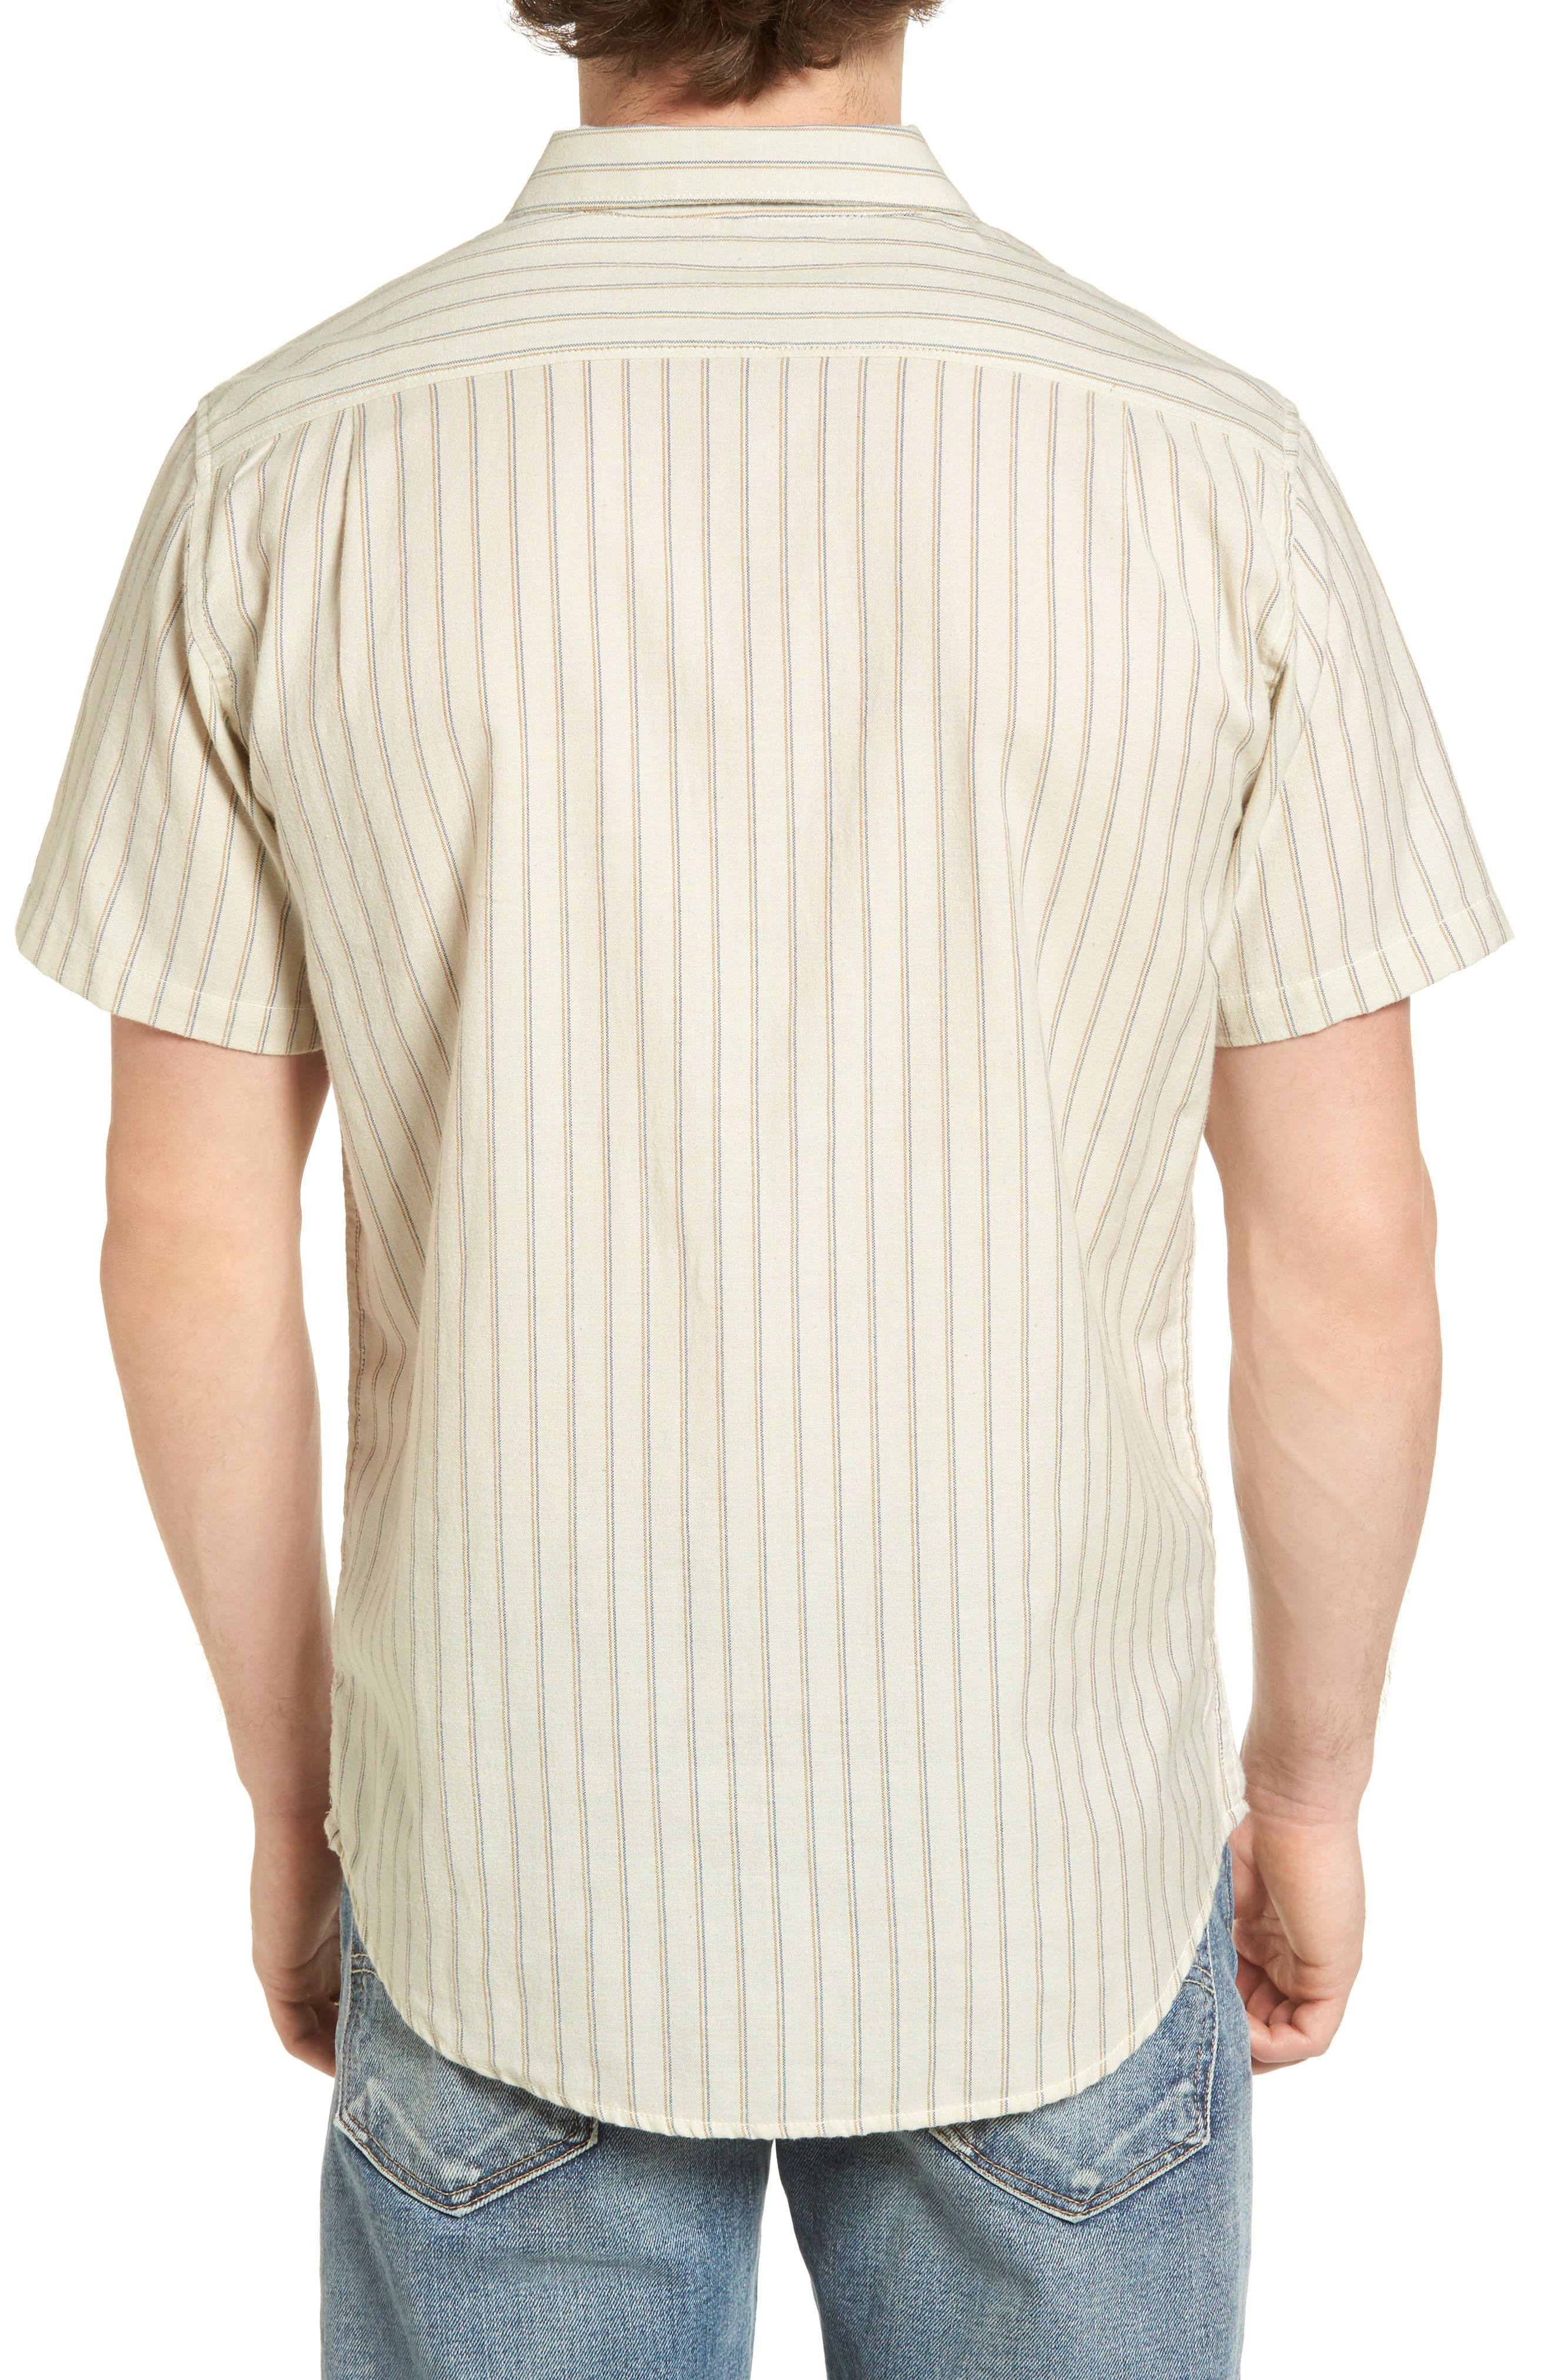 Kelso Tailored Fit Stripe Shirt,                             Alternate thumbnail 2, color,                             Stone